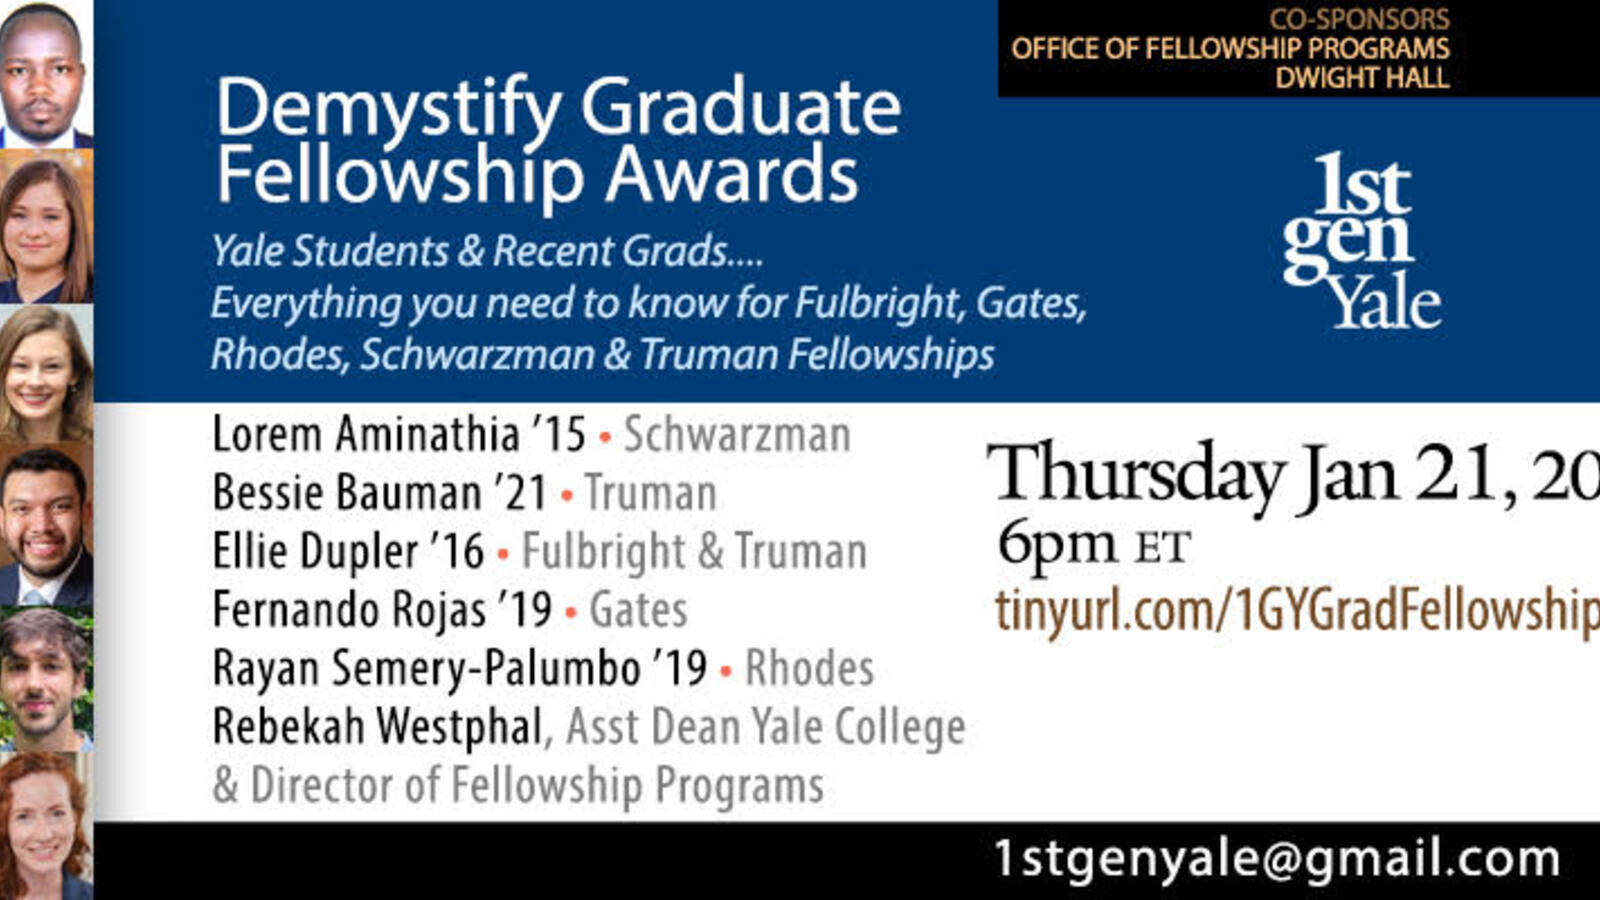 1stGenYale Demystify Graduate Fellowship Awards